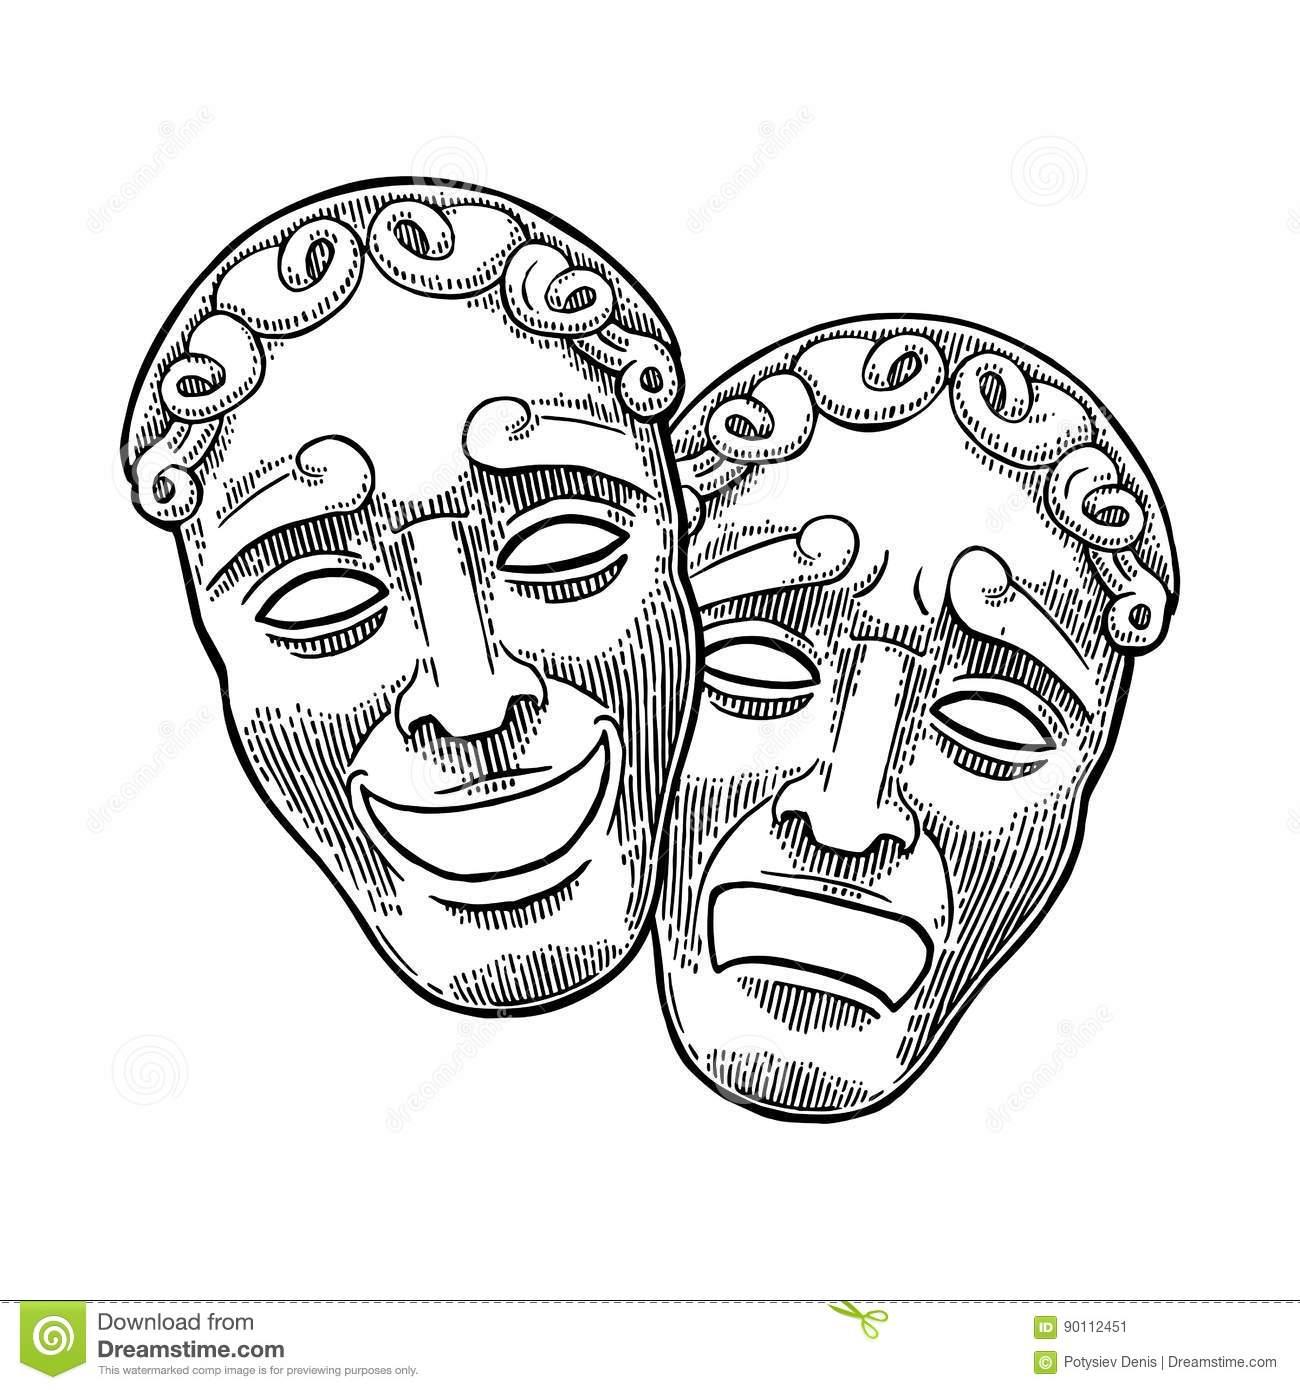 an essay on comedy and tragedy in plays Shakespeare's comedy vs tragedy- certain parallels can be drawn between william shakespeare's plays, a midsummer night's dream, and romeo and juliet these parallels concern themes and prototypical shakespearian character types.